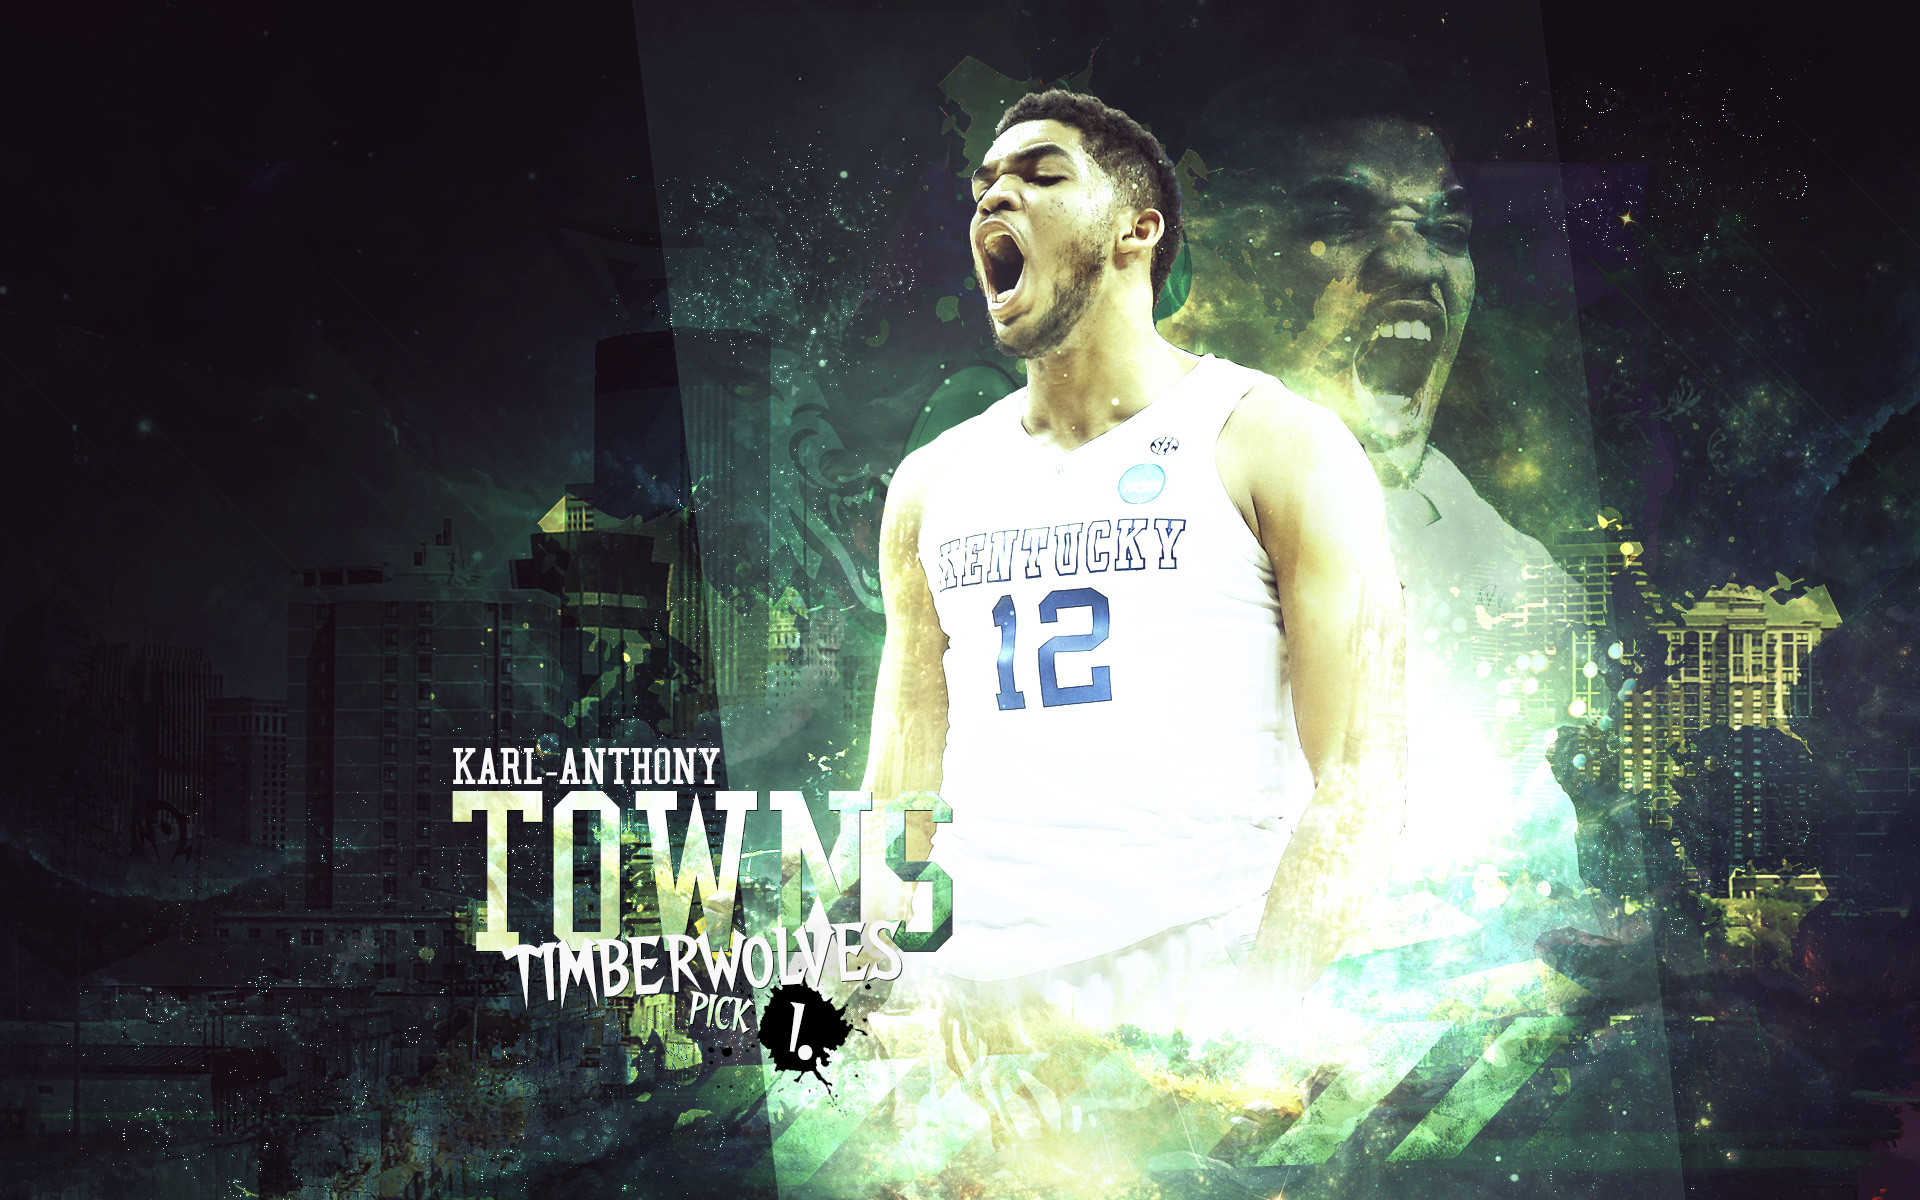 Karl Anthony Towns Kentucky Wildcats Background.